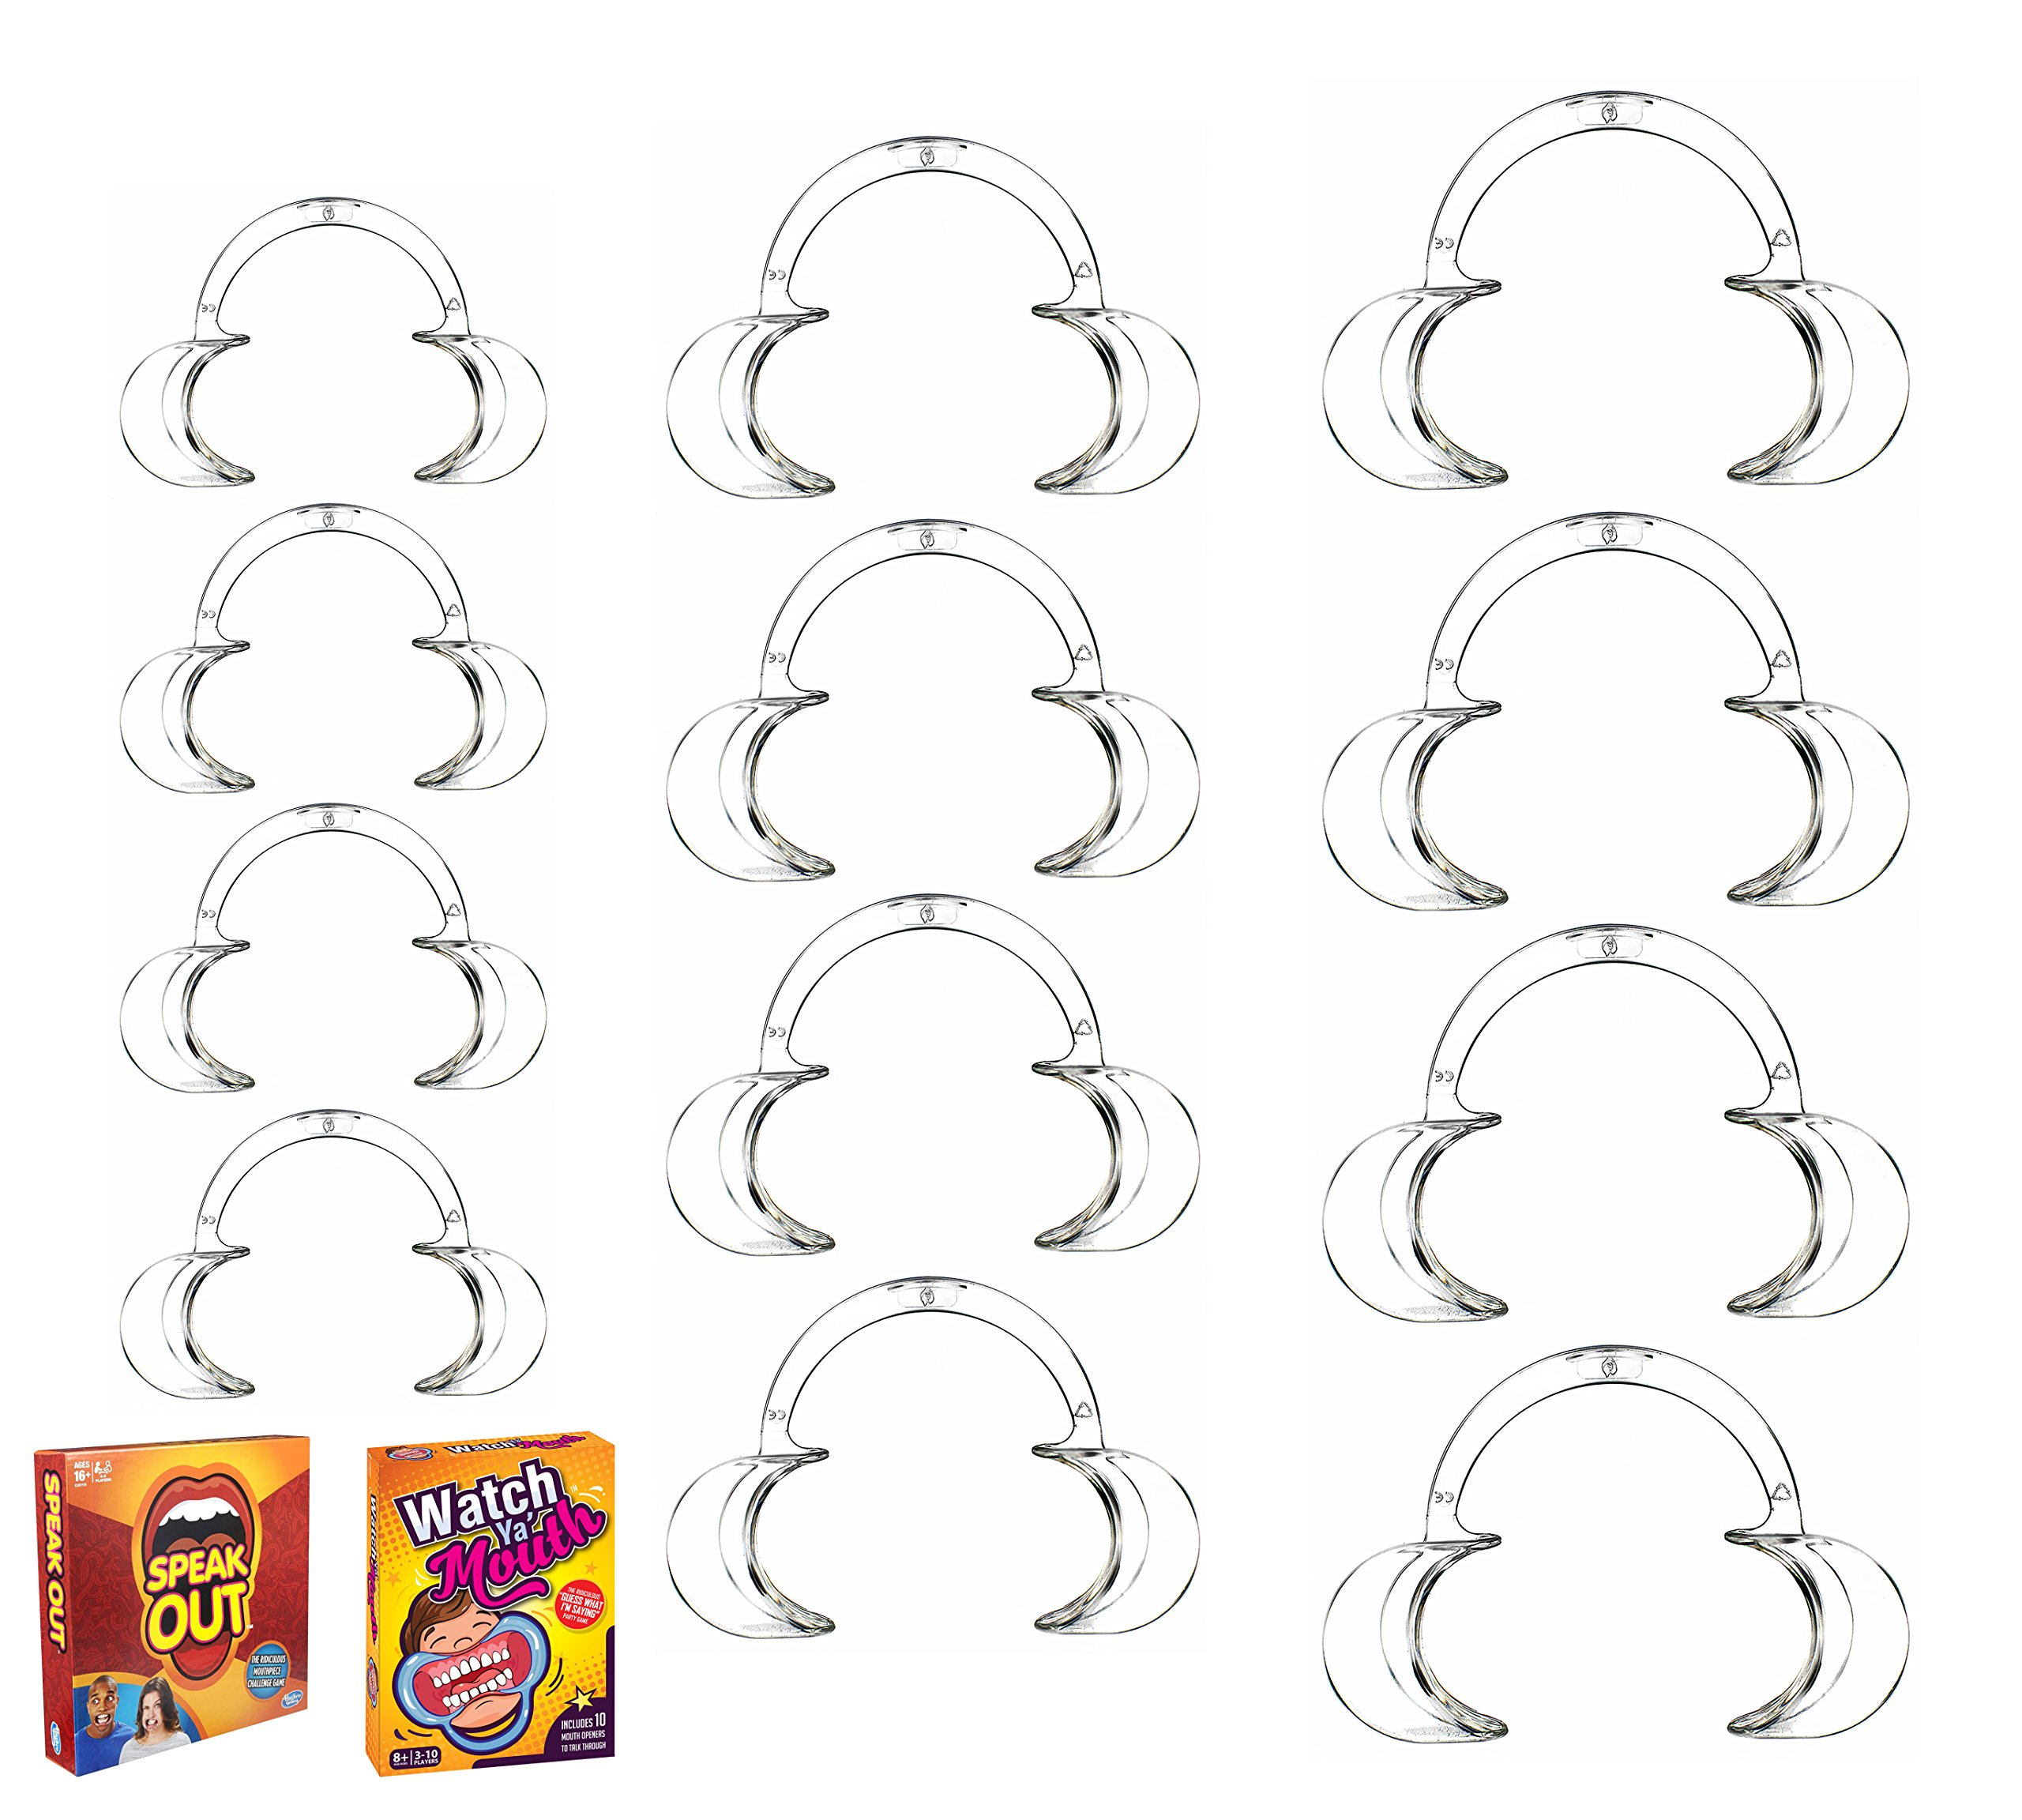 Dental Cheek Retractor Mouth Opener for Teeth Whitening Clear C-shape (Size 4 Small, 4 Medium, 4 Large), 12 Pack